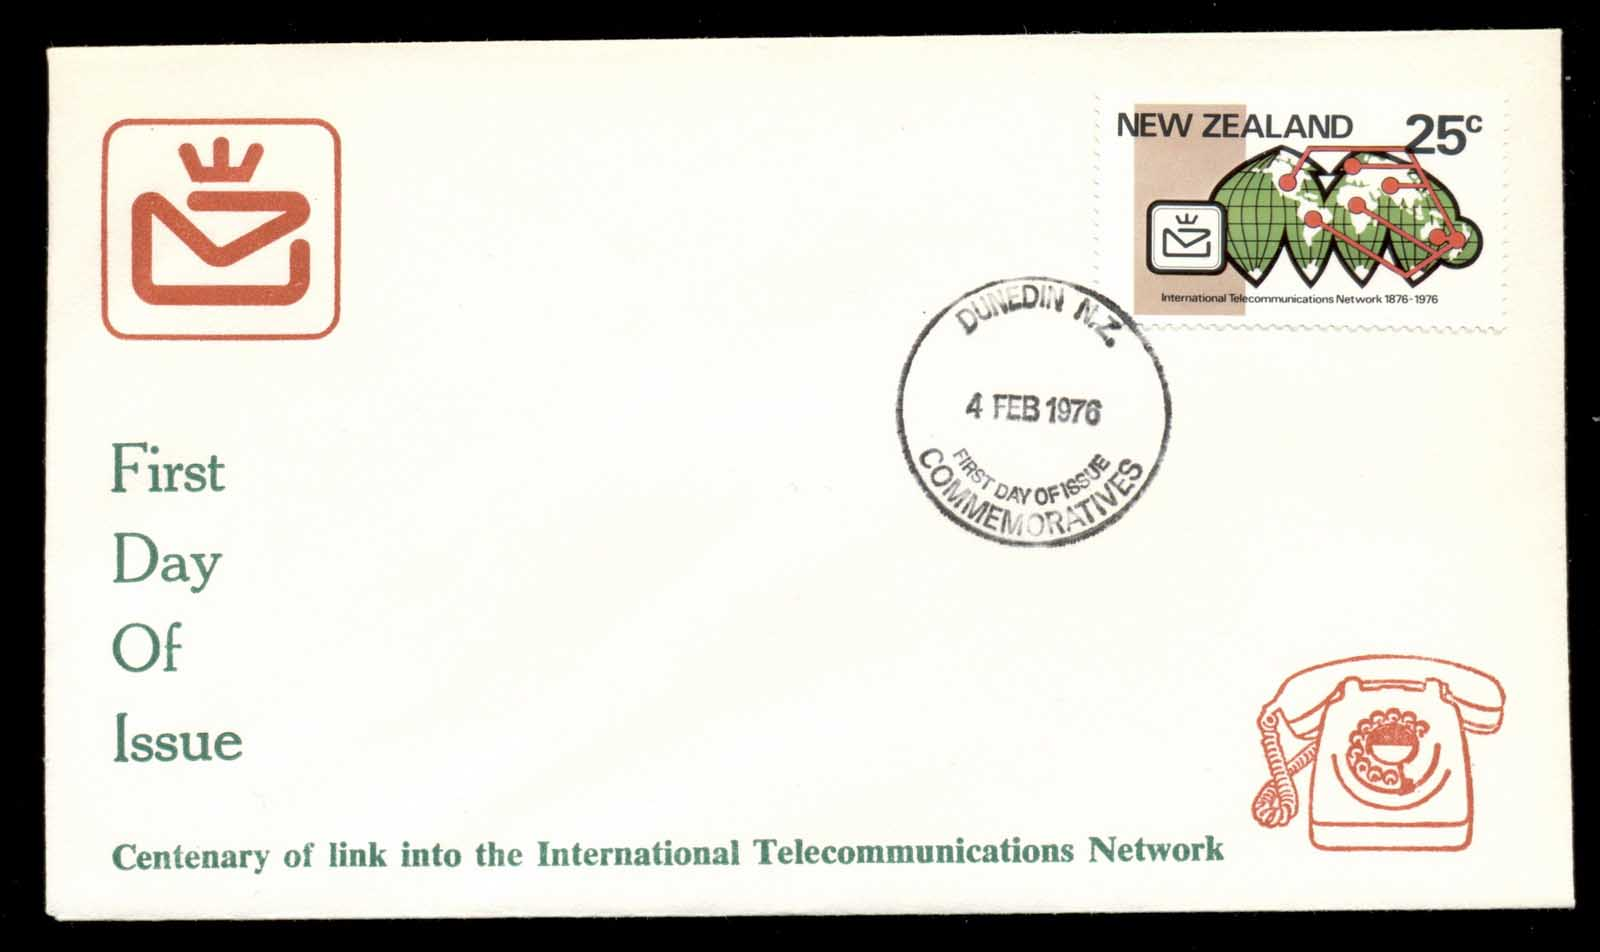 New Zealand 1976 Telephone Centenary, Alexander Graham Bell FDC